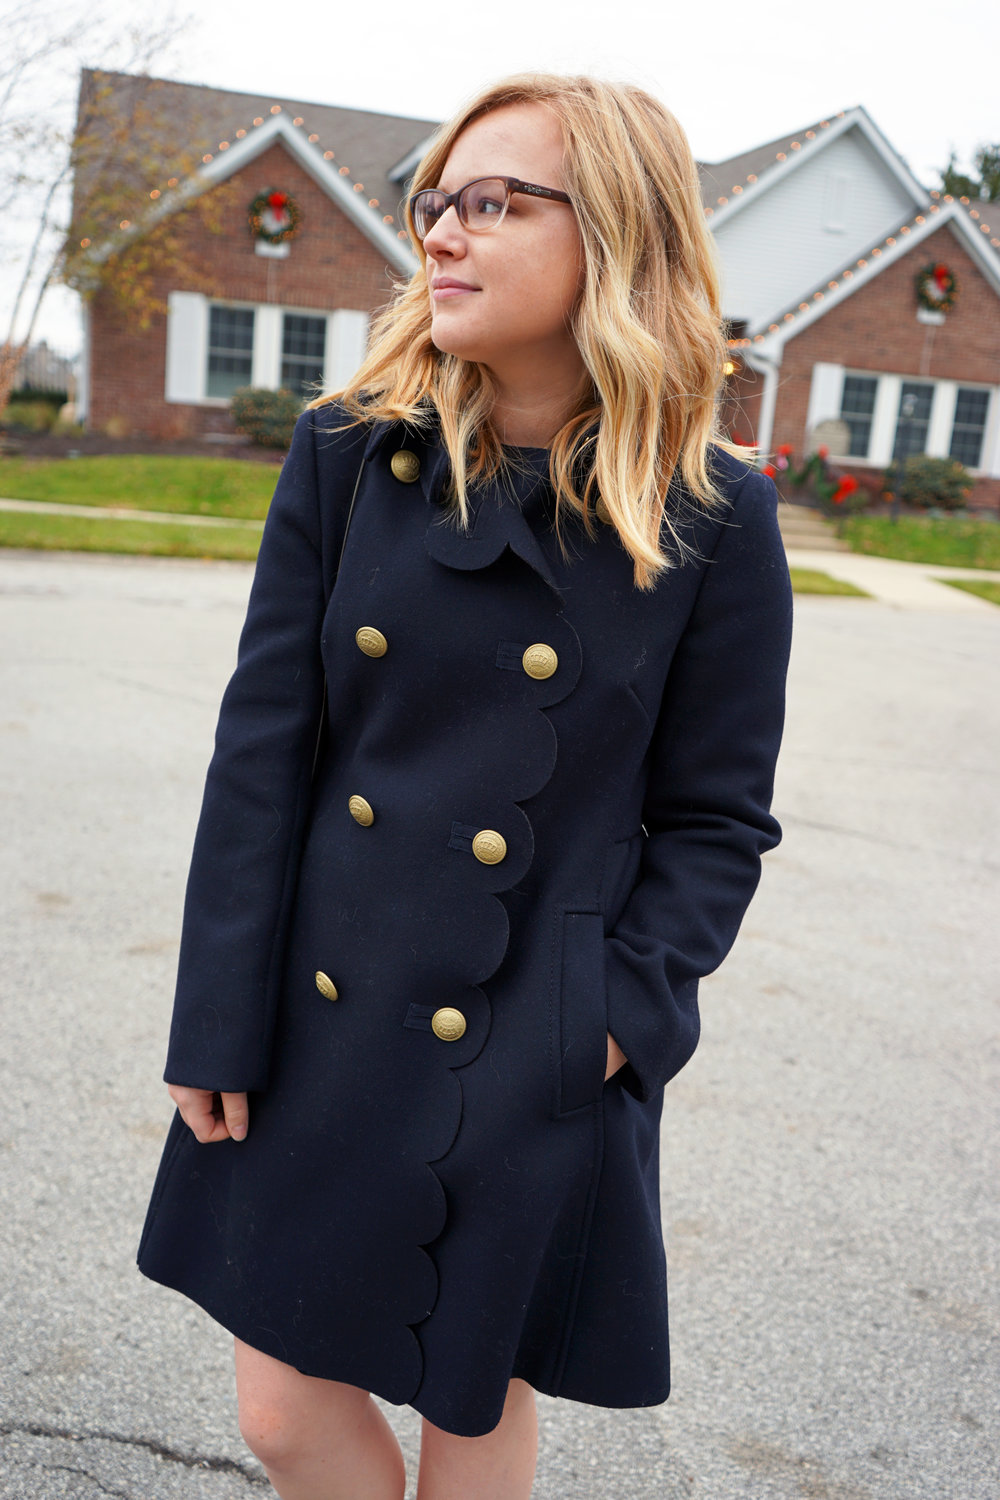 Maggie a la Mode - RED Valentino Scalloped Peacoat 2.JPG